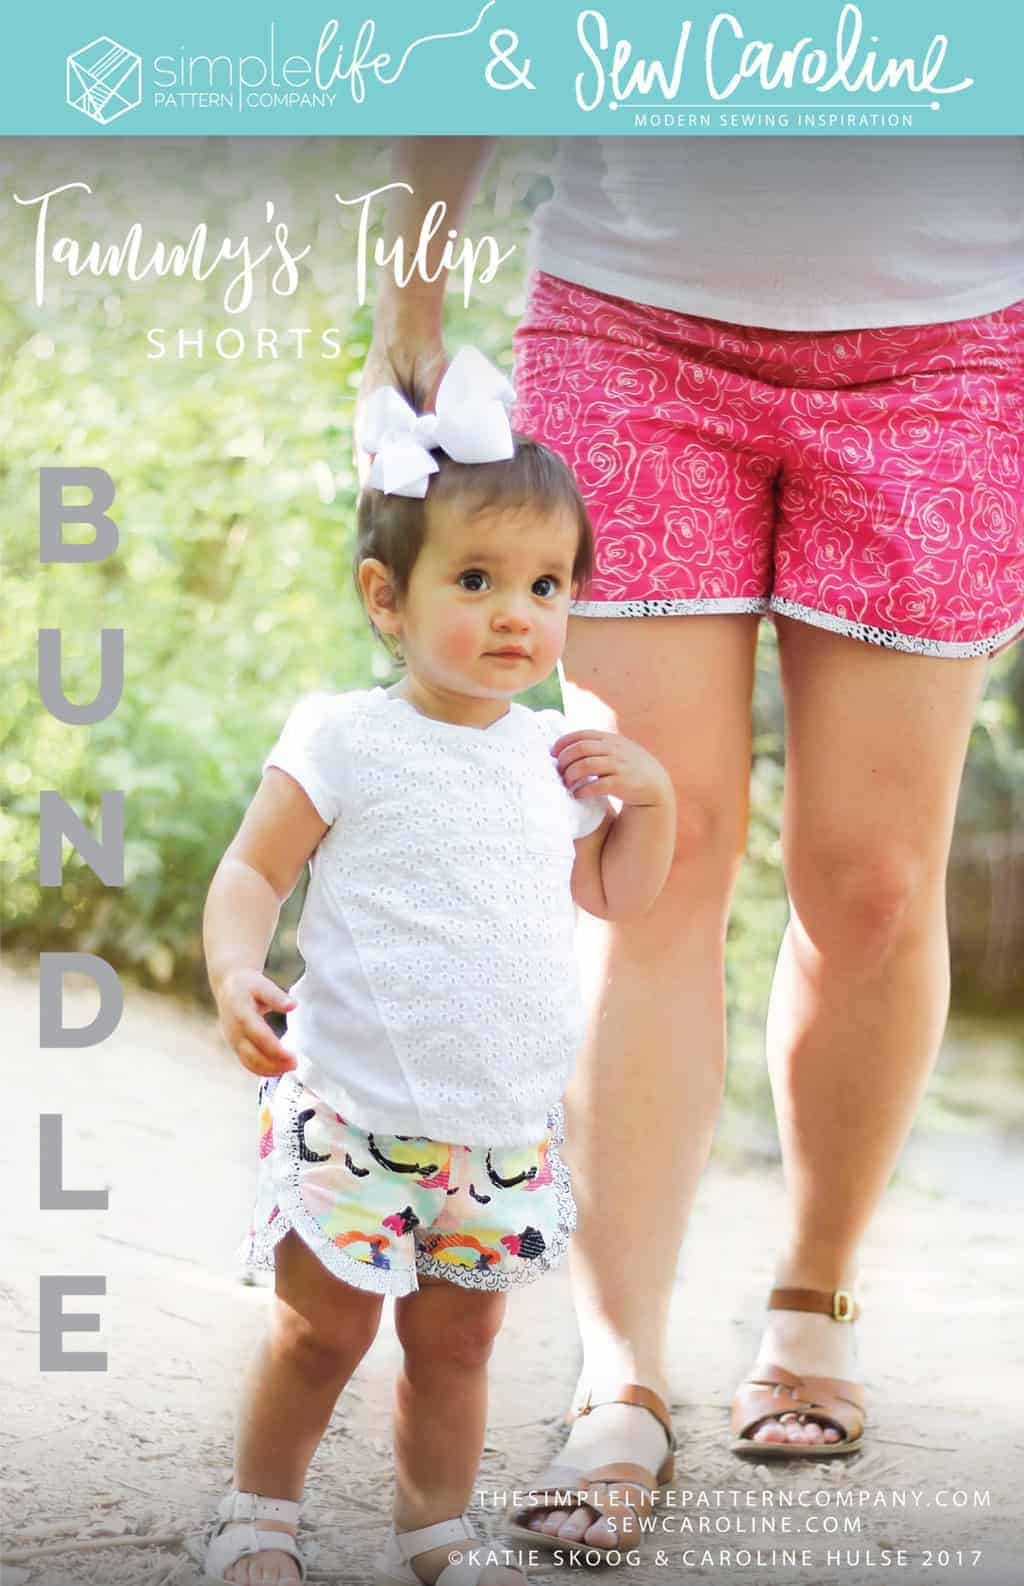 Simple life pattern company in collaboration with Sew caroline women pdf sewing patterns Tammy's tulip shorts cochlea sports athletic relax comfy pom pom shorts easy modern sewing patterns ladies mommy momma and me girls beginner easy fast Womens and girls bundle sewing pattern sew mommy and me